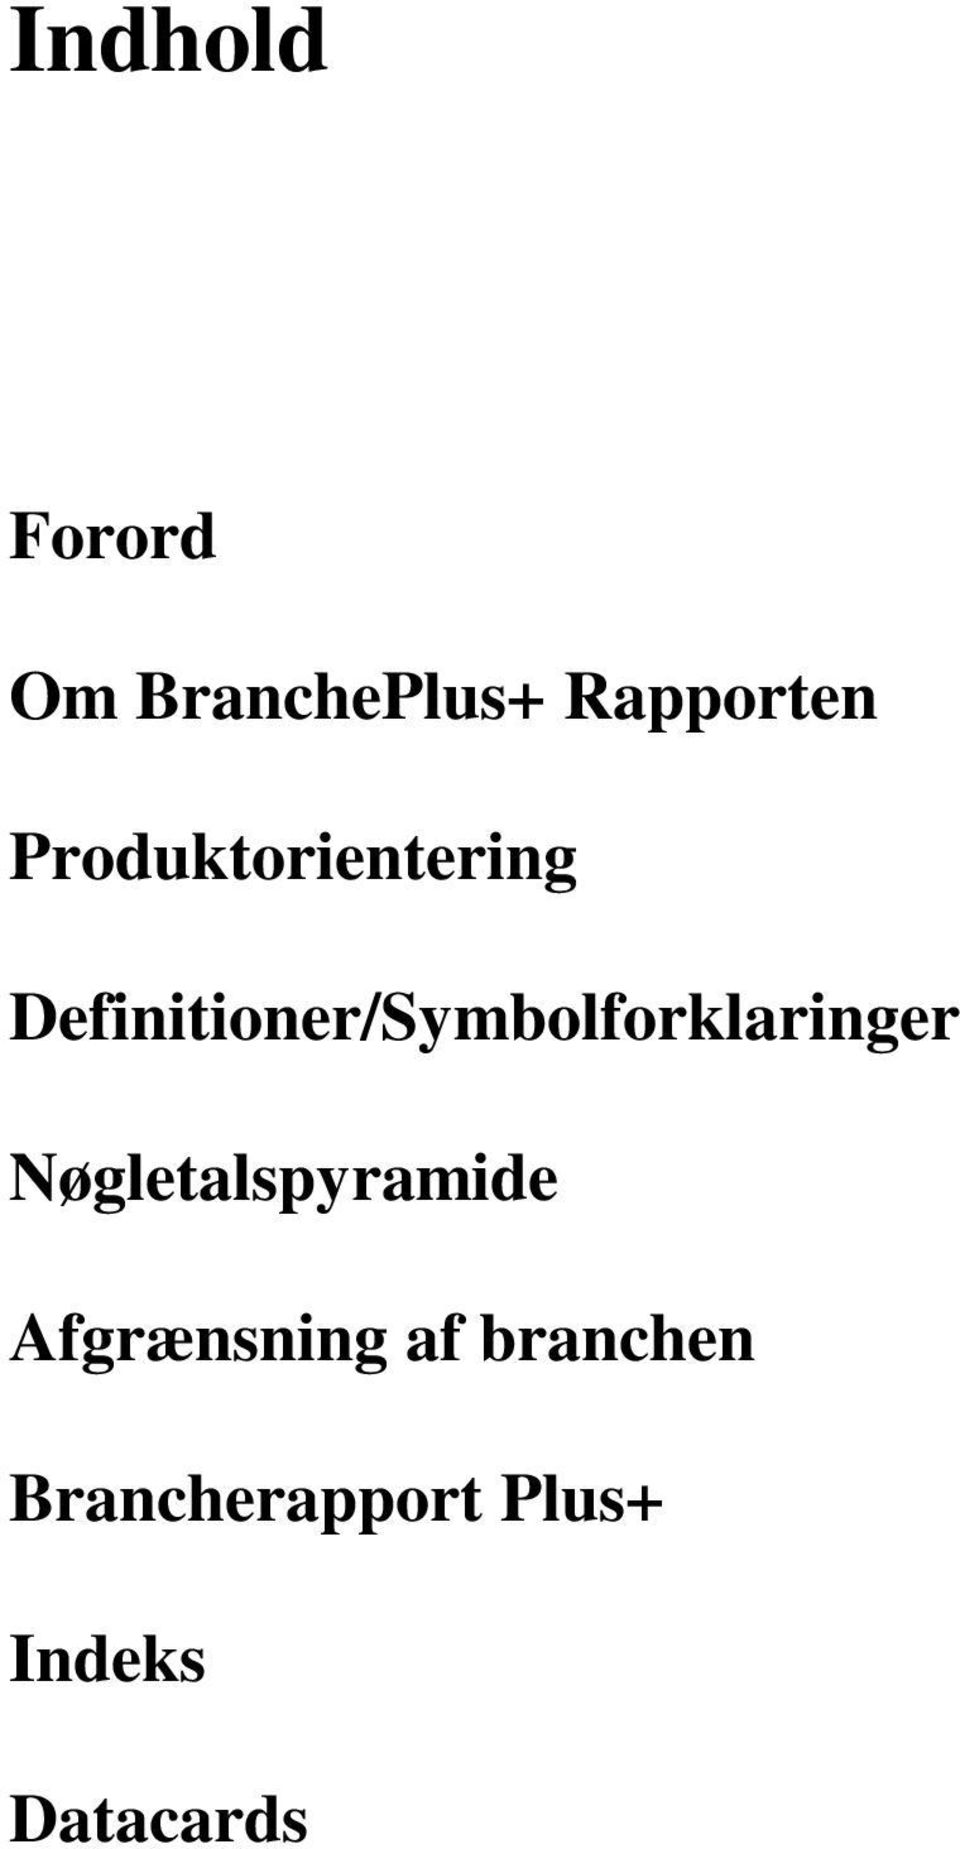 Definitioner/Symbolforklaringer